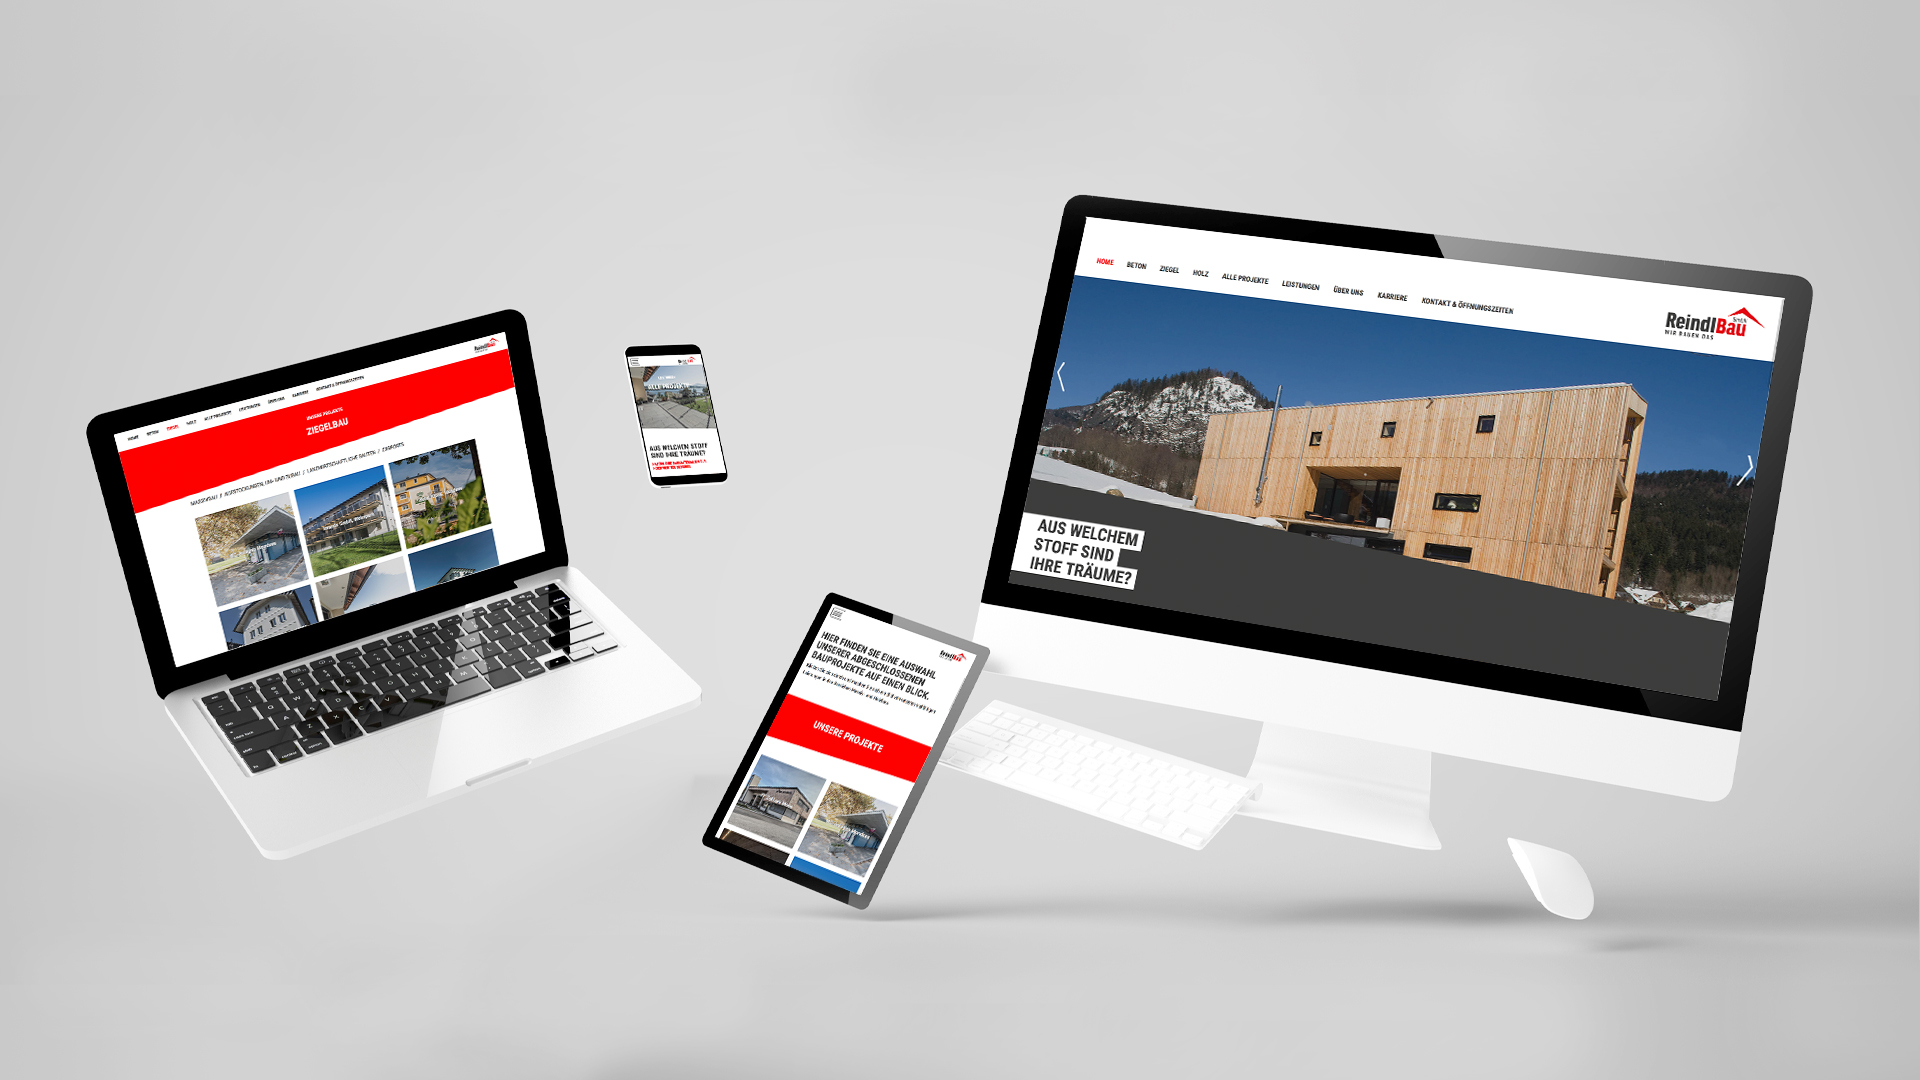 Reindl Bau Website Overview